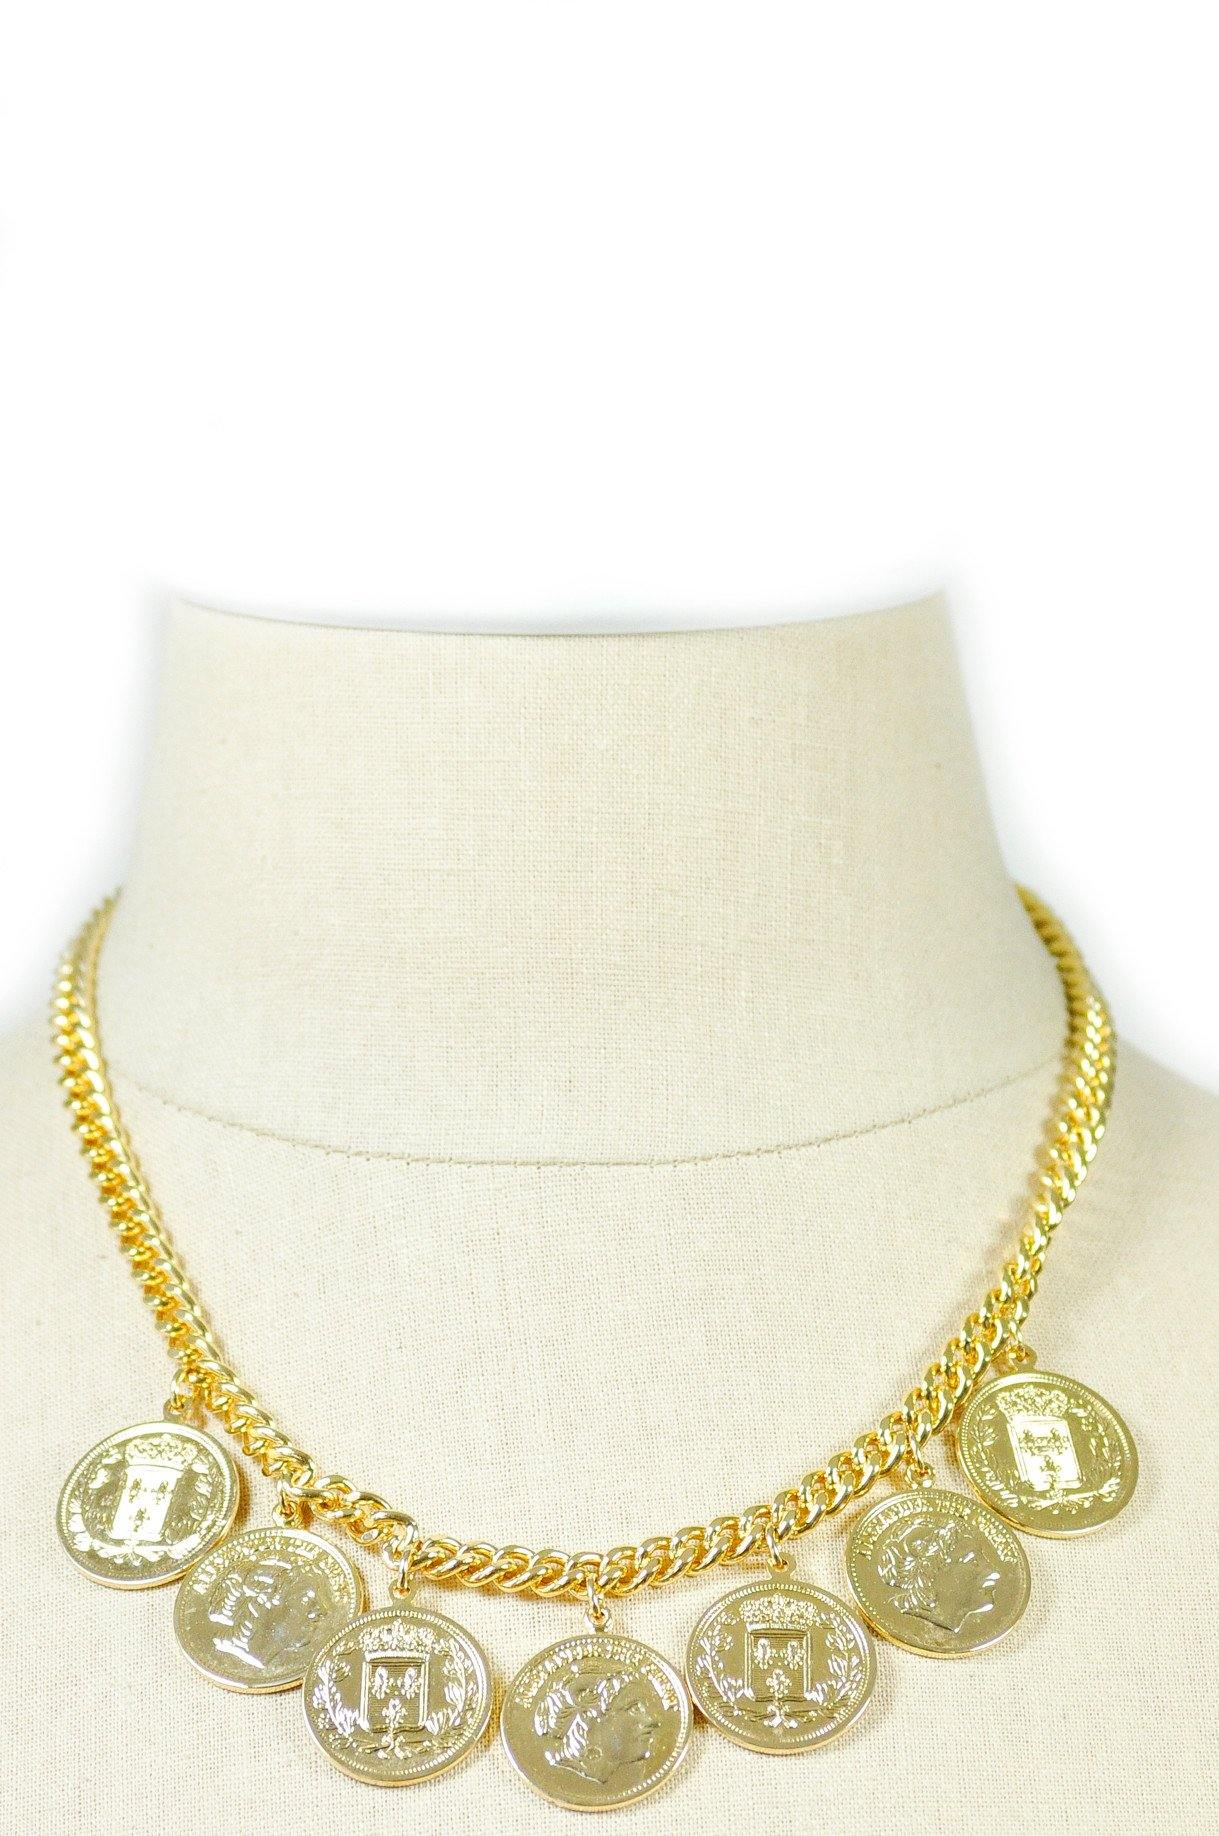 80's__Vintage__Coin Charm Necklace